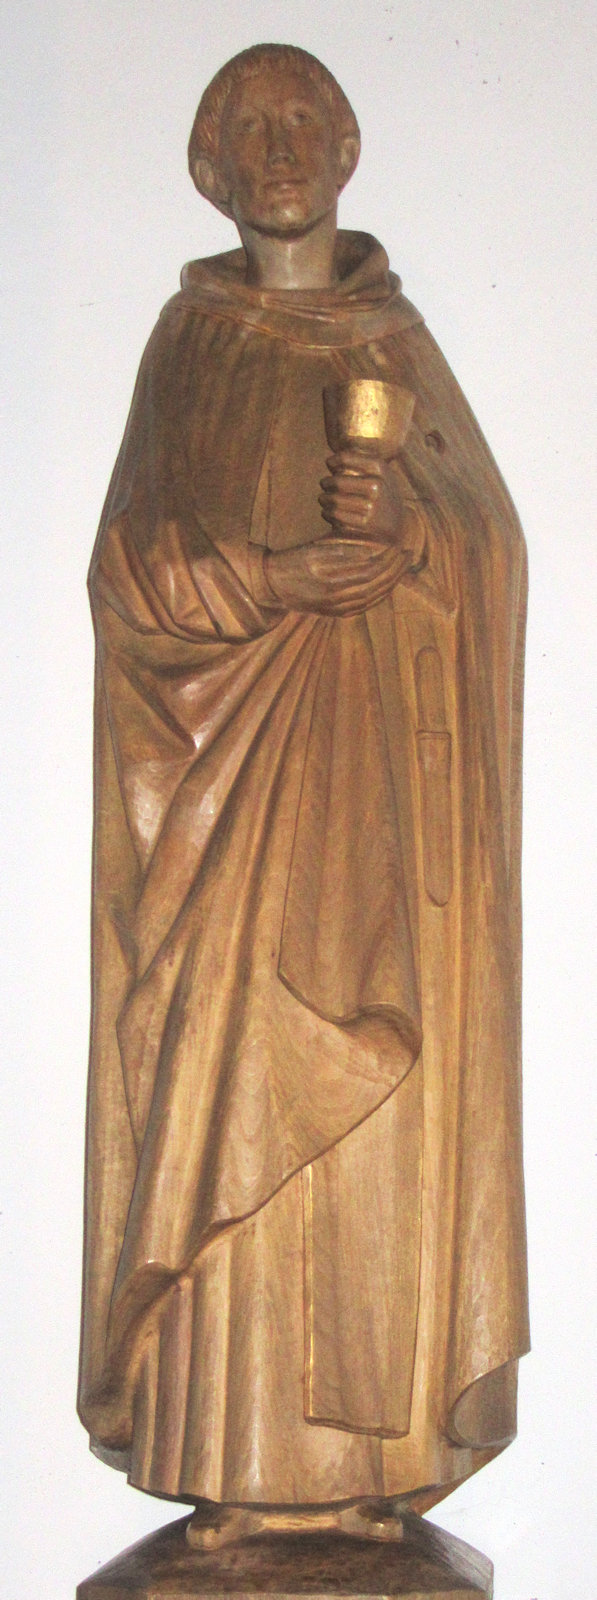 Statue Kloster Marienborn in Hoven